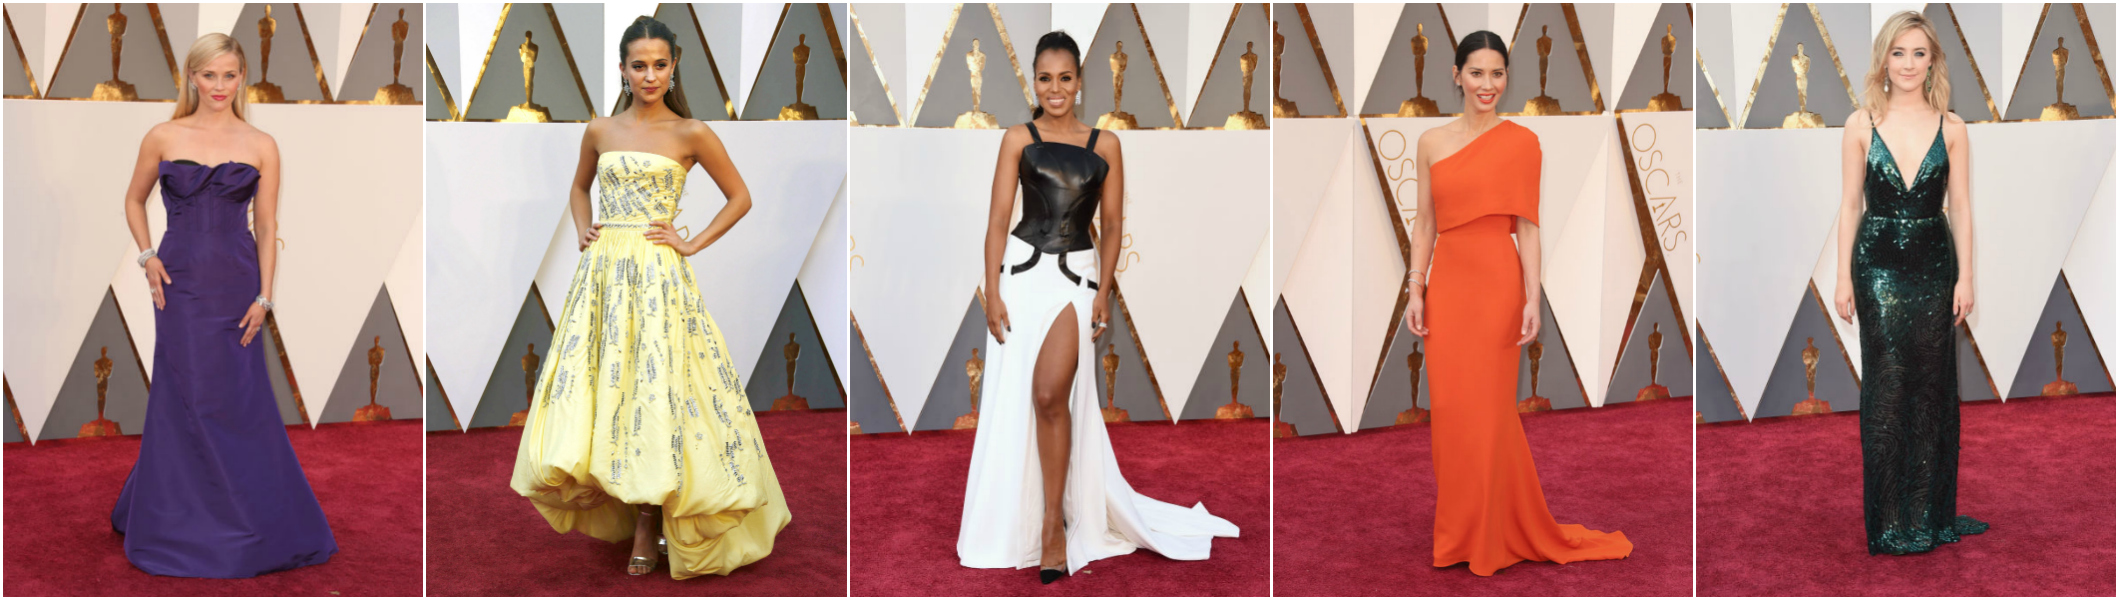 Oscars-Red-Carpet-Petite-Celebrities 2016